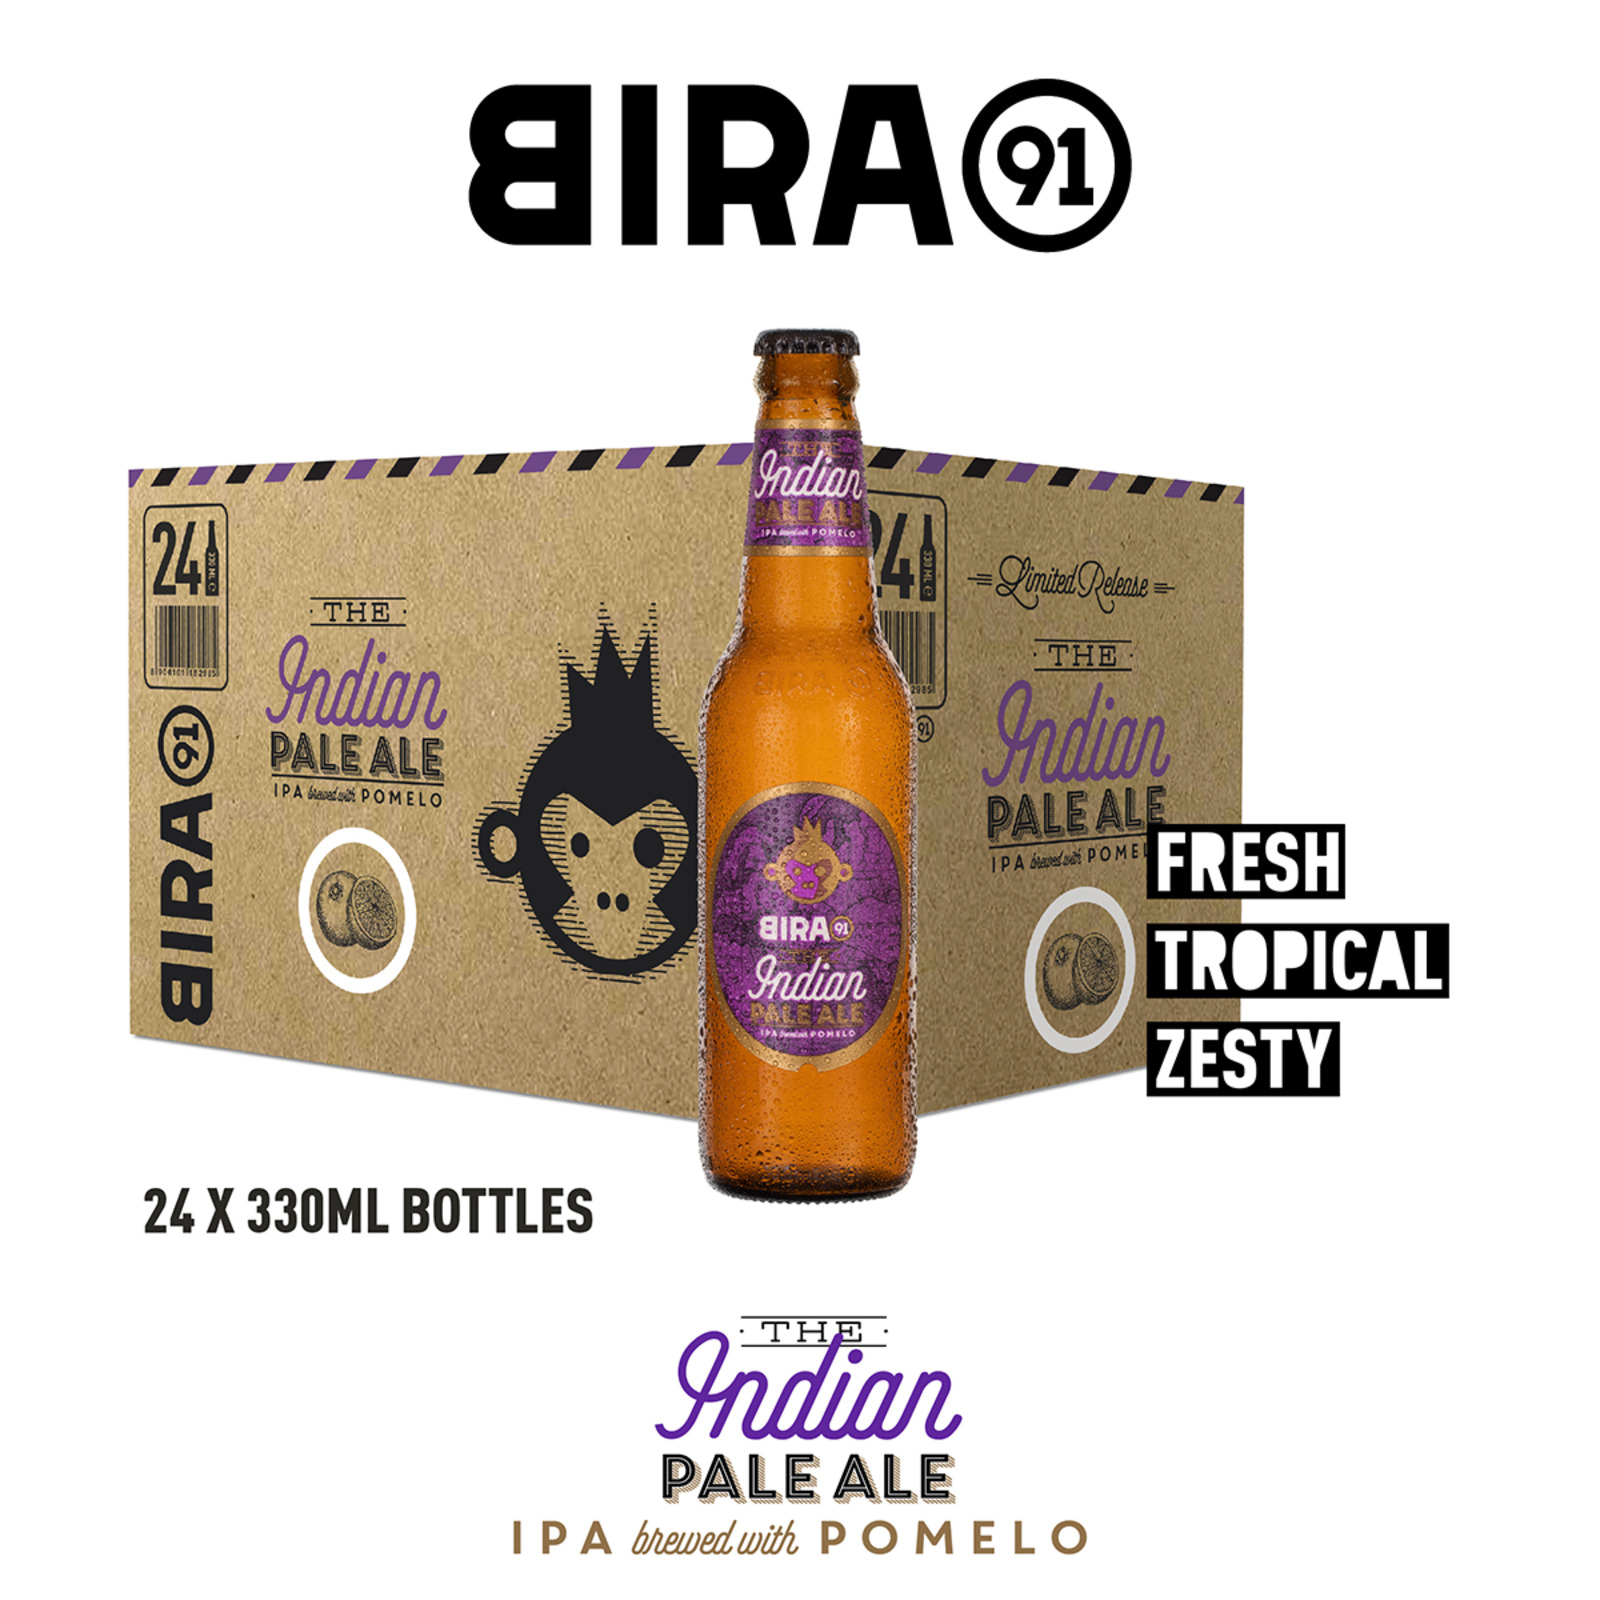 Bira 91 Indian Pale Ale Pomelo Beer 4.5% Bottle - Case